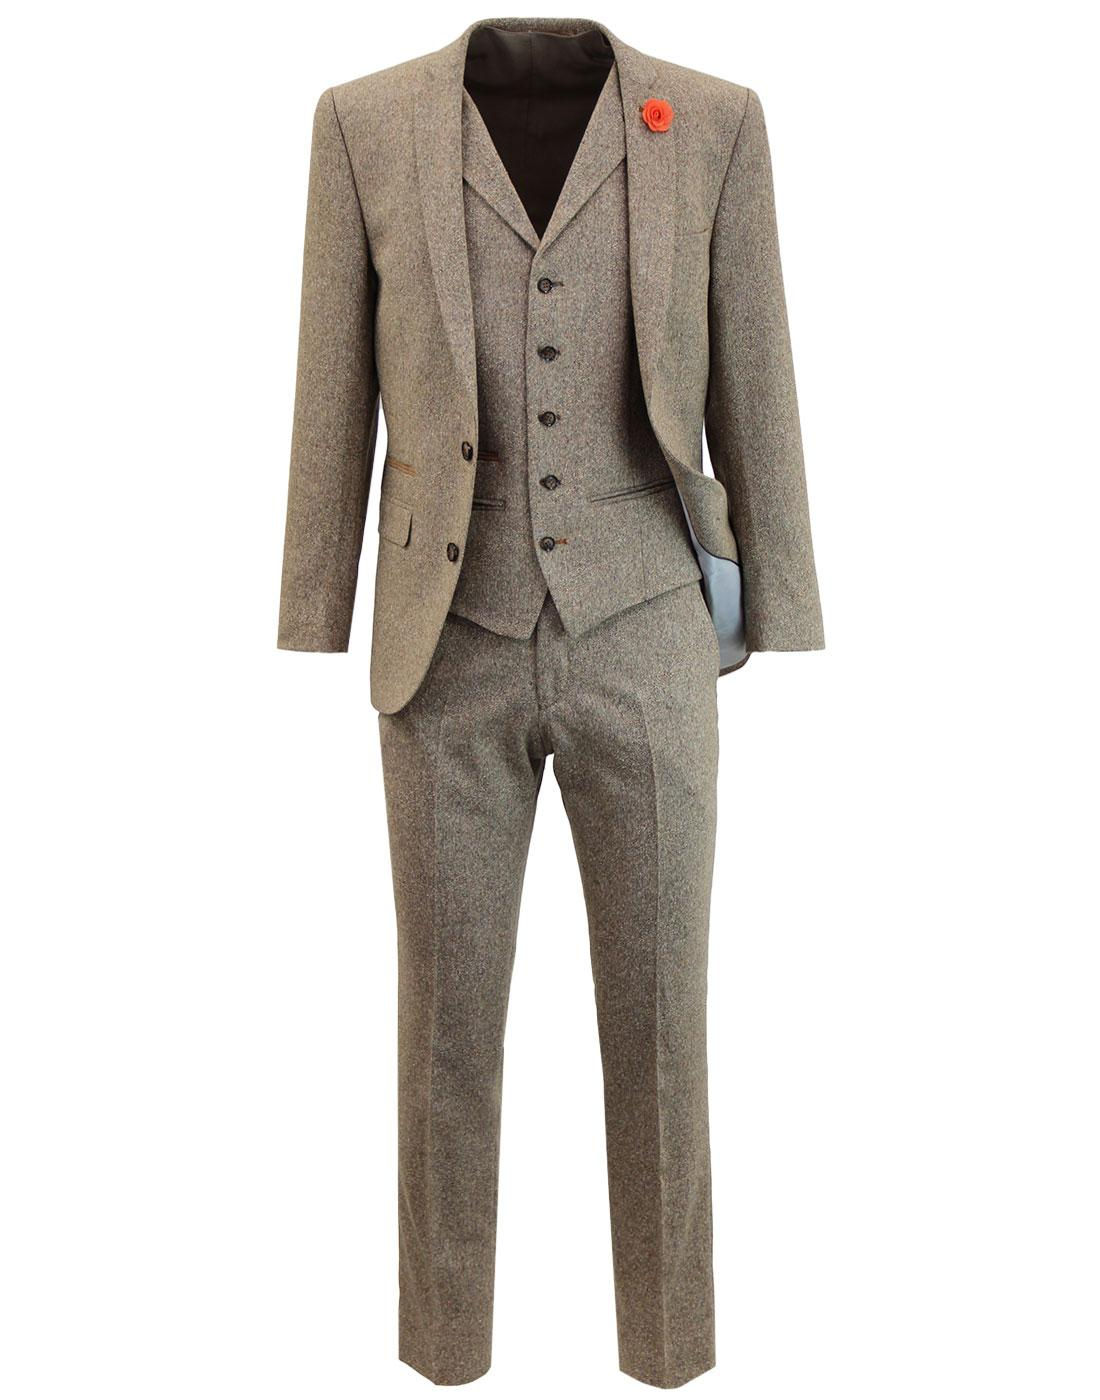 Men's 60s Mod Donegal Fleck 2 Button Suit -Biscuit